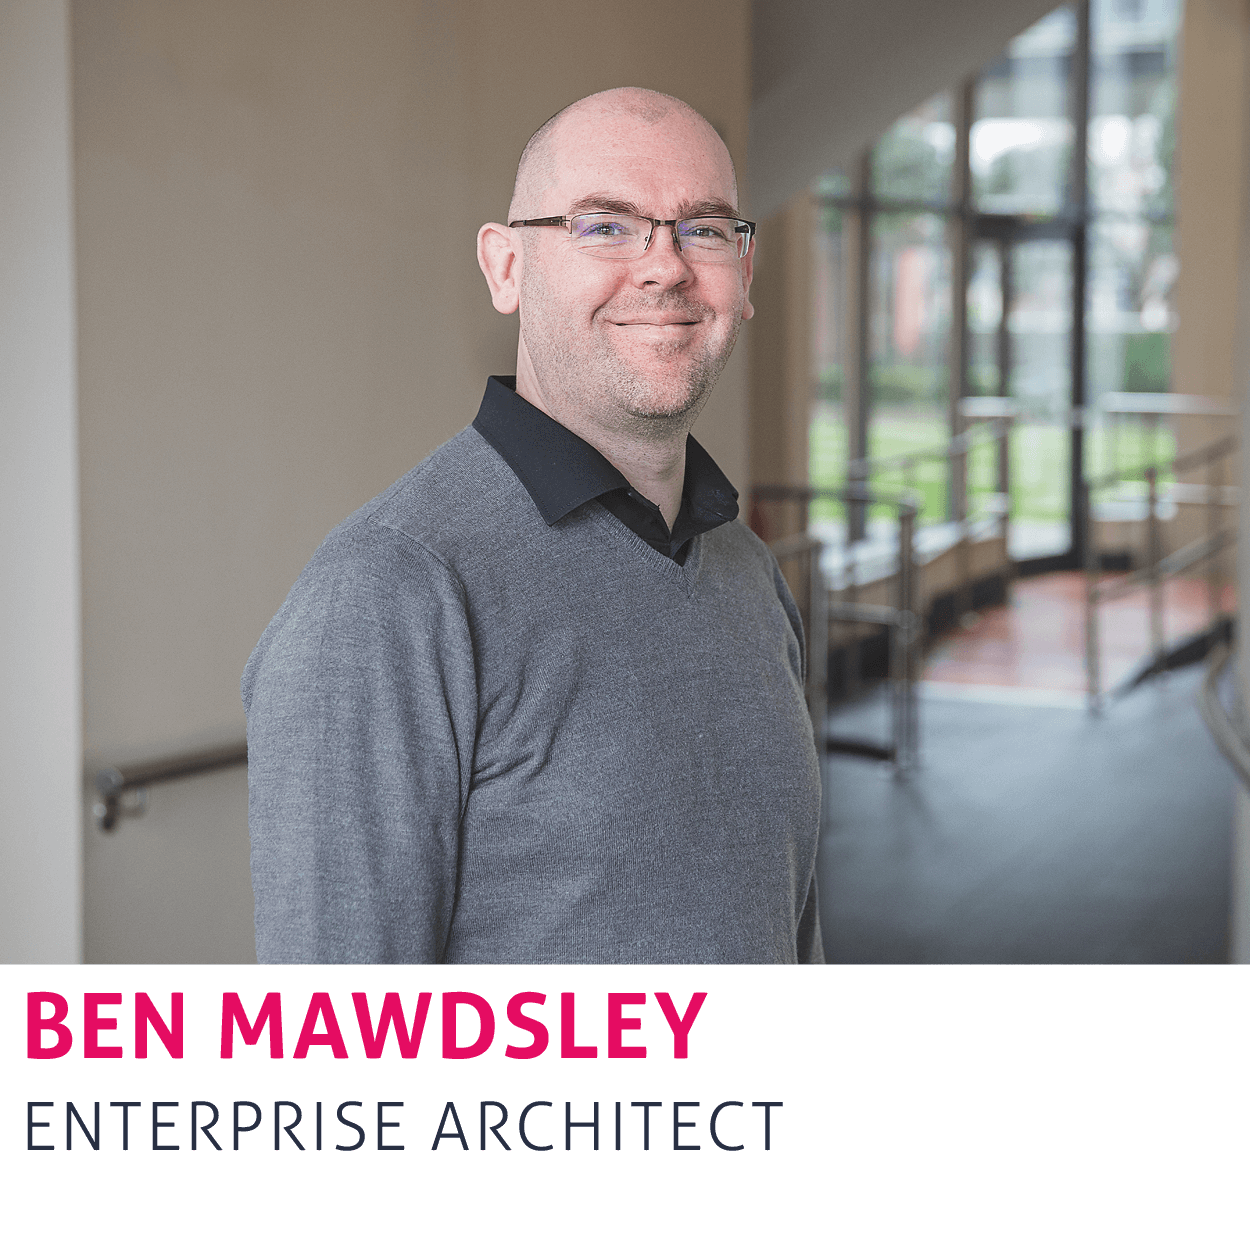 Ben Mawdsley, Enterprise Architect